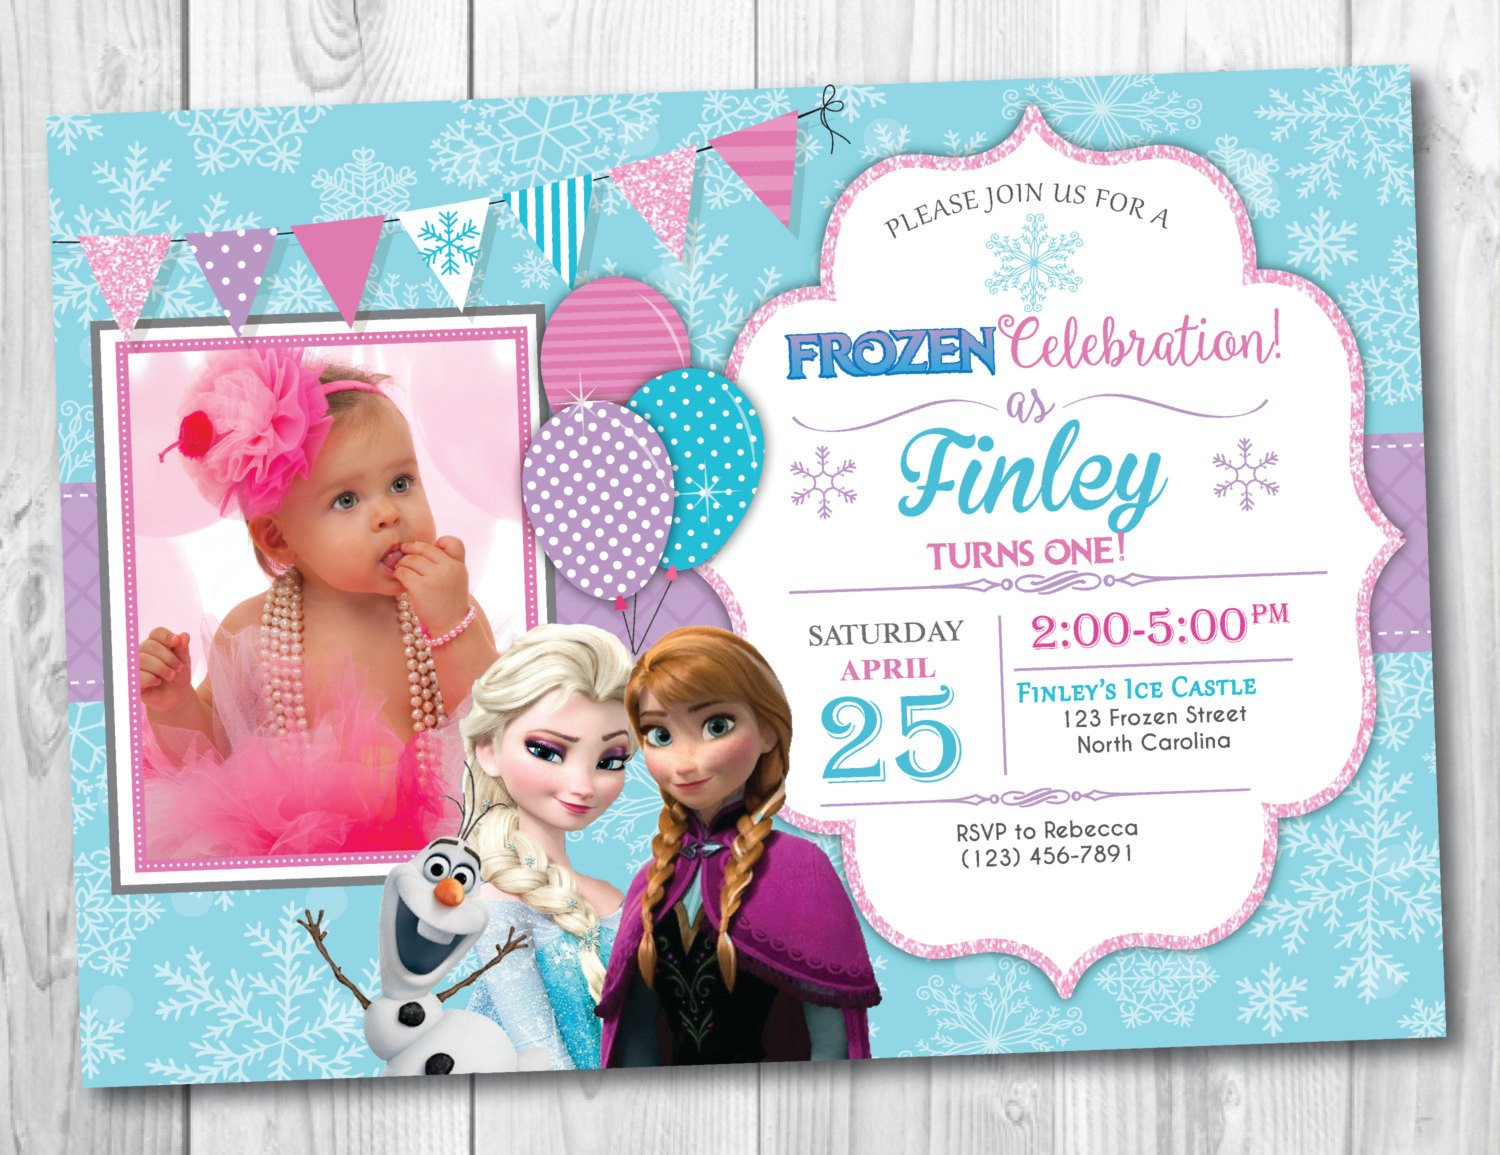 Frozen Birthday Invitations Cards Frozen Birthday Invitation Printable with Frozen